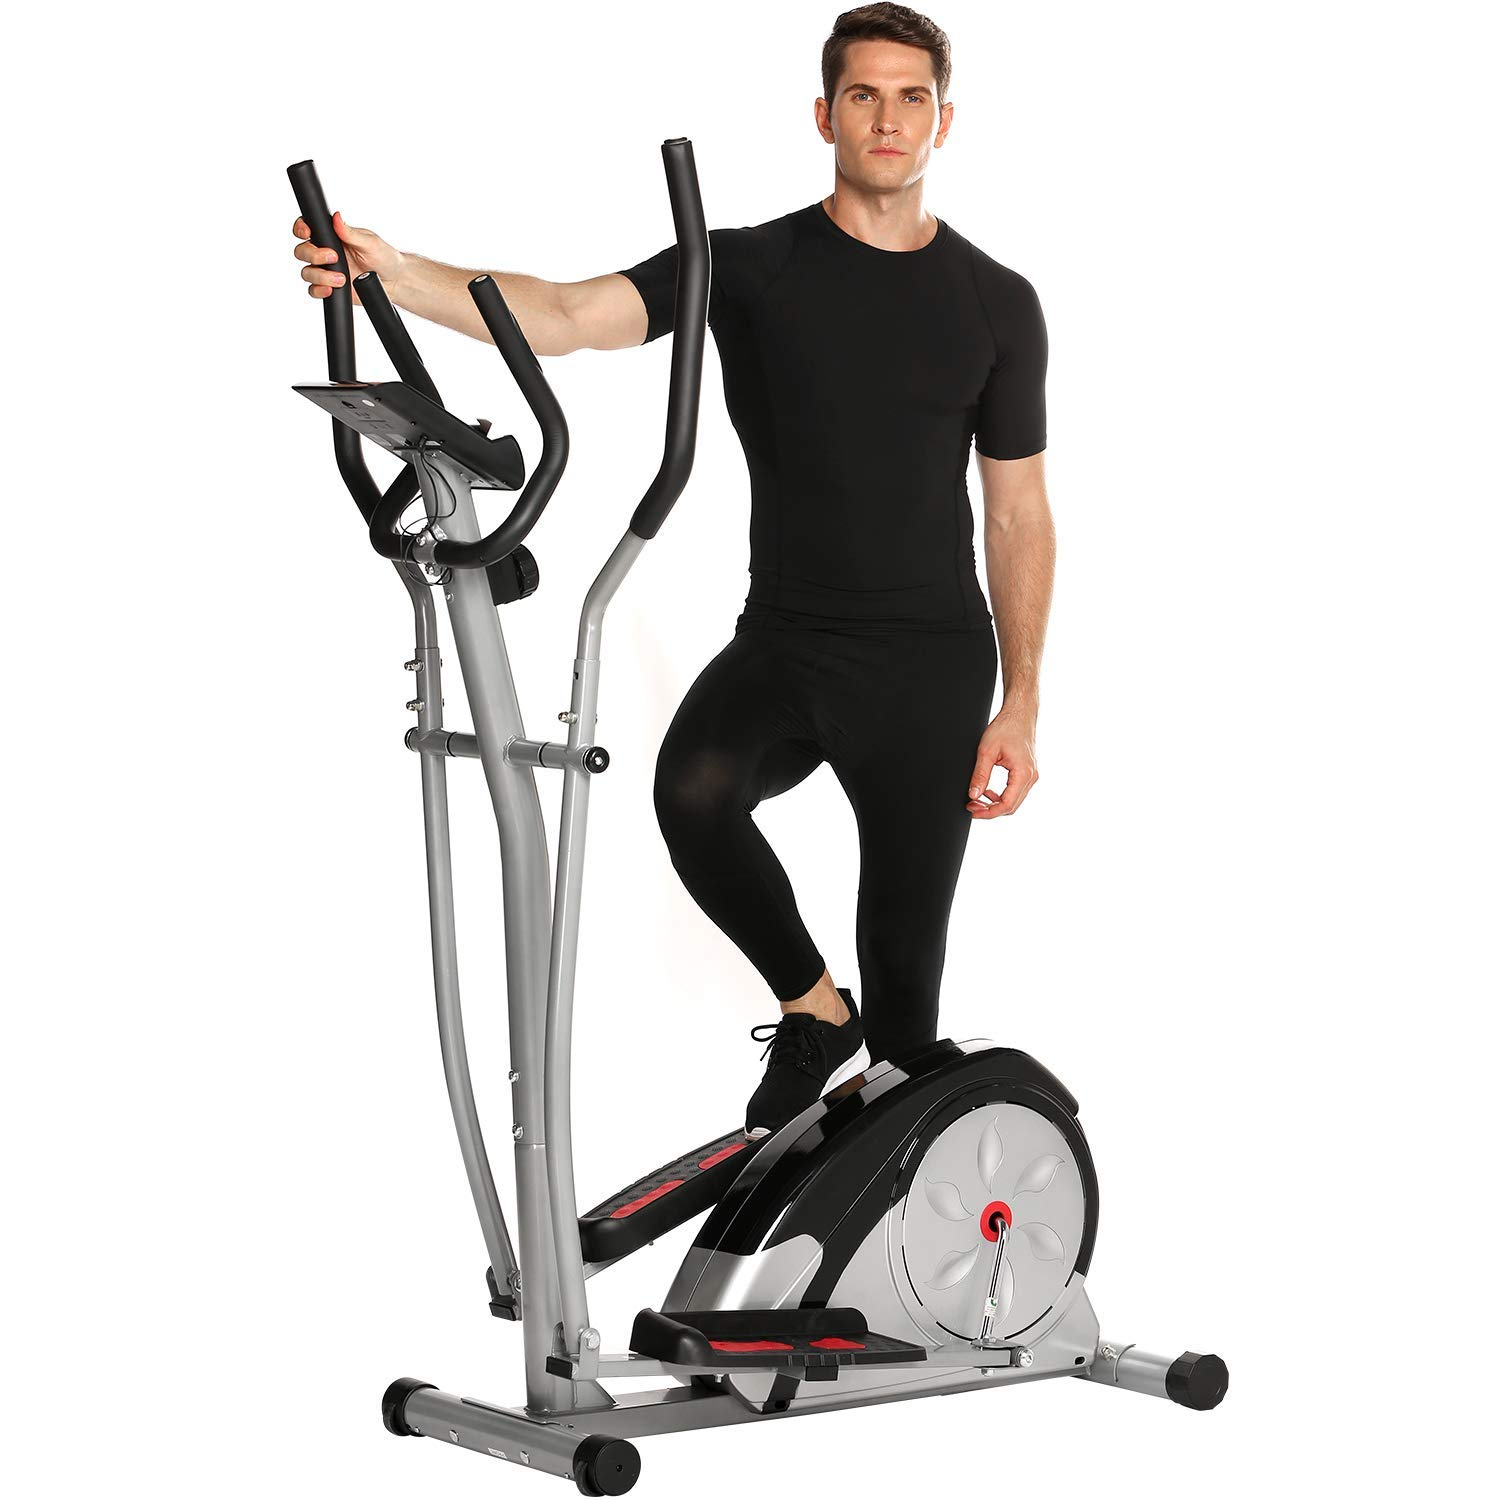 Jaketen Elliptical Exercise Machine Magnetic Smooth Quiet Driven Eliptical Trainer Machine for Home Use (Elliptical-Gray) by Jaketen (Image #1)